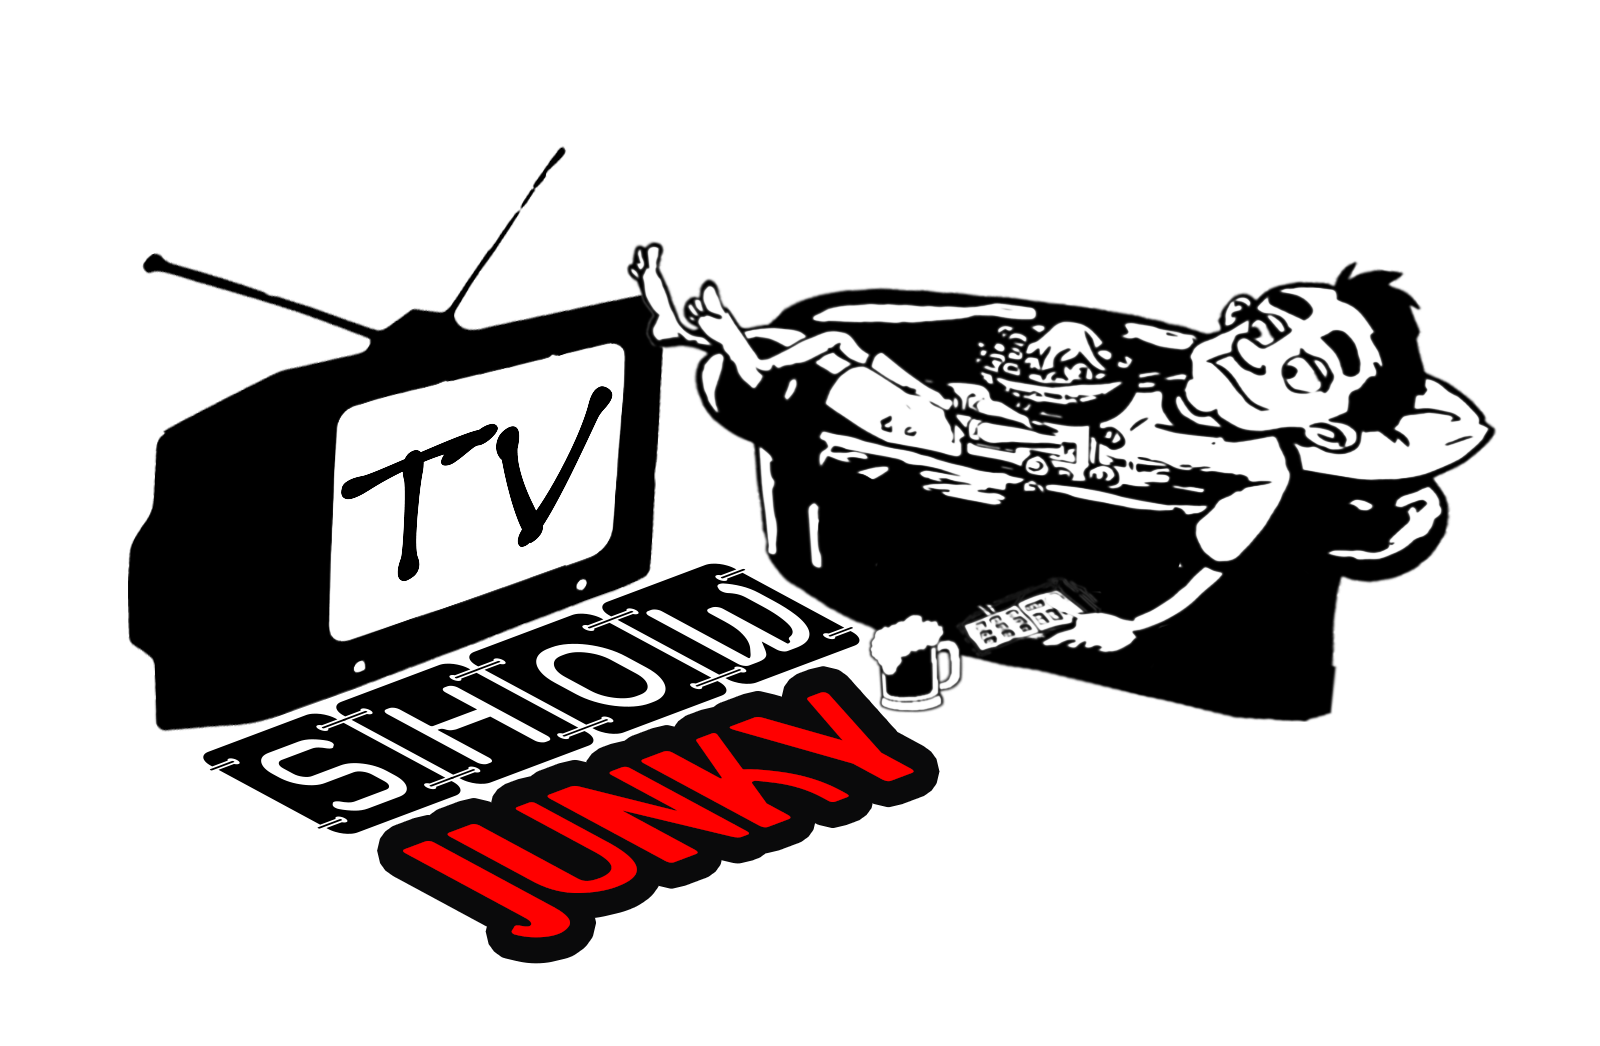 Television clipart tv show. Junky a safe place